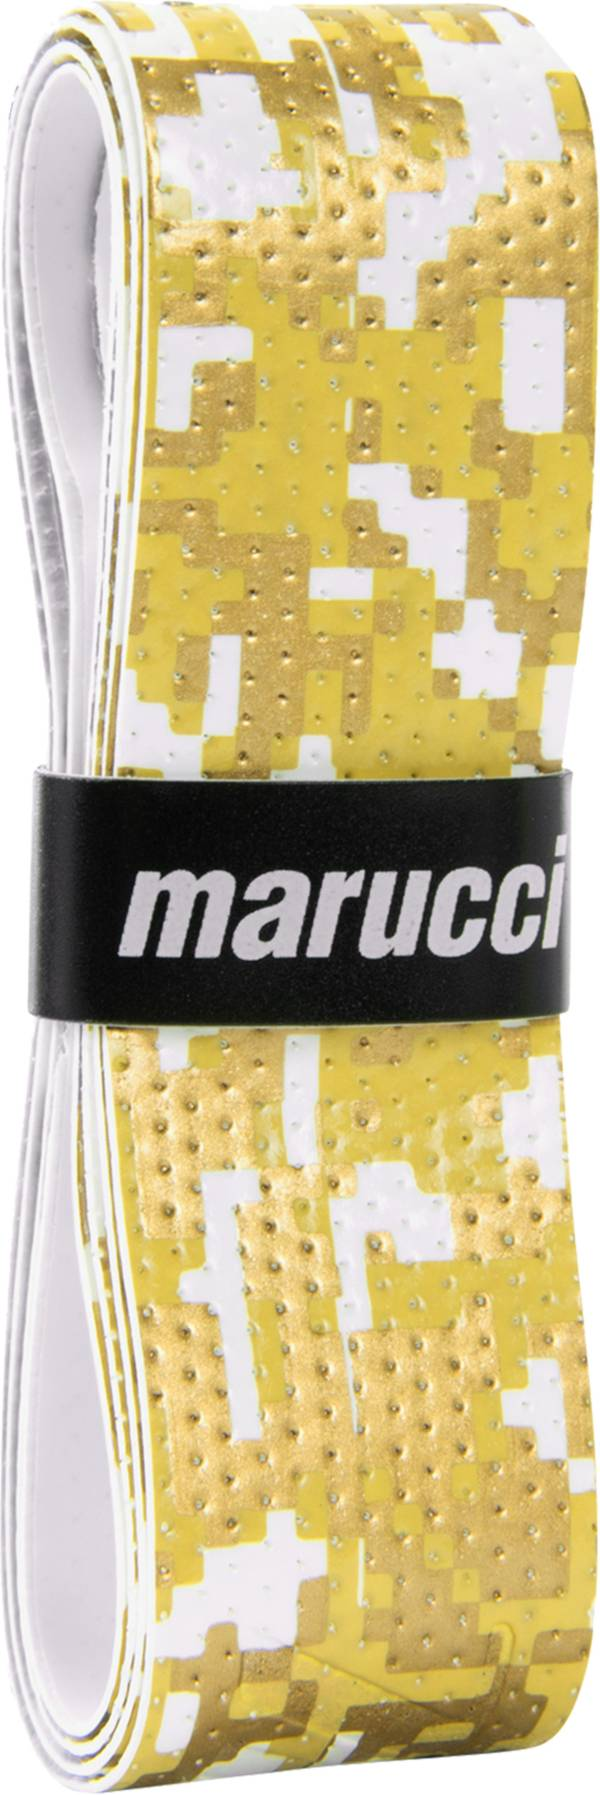 Marucci 0.5mm Bat Grip product image